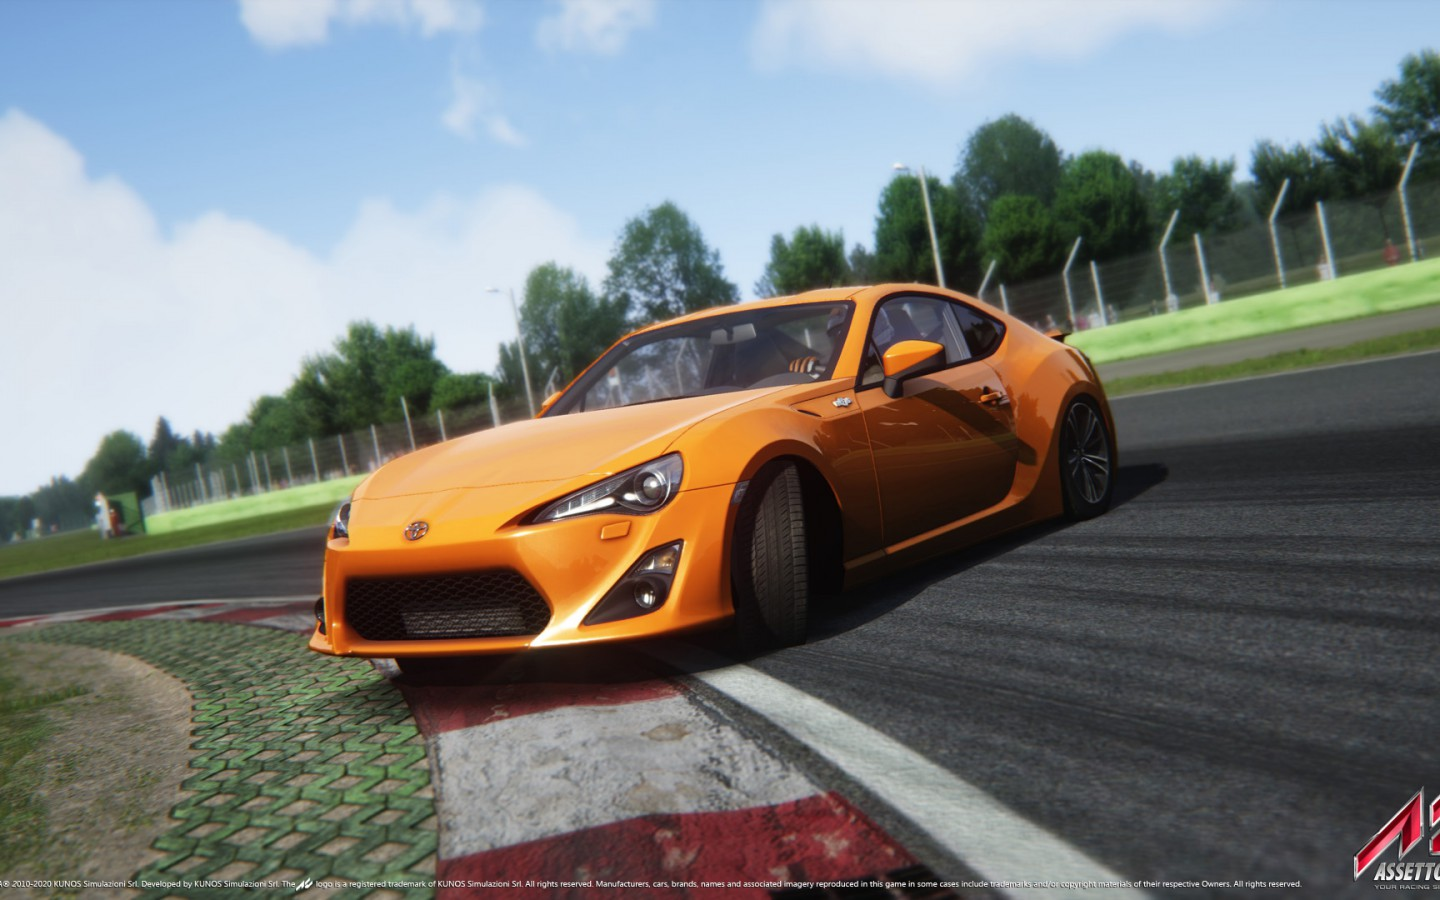 Assetto Corsa version 1.2